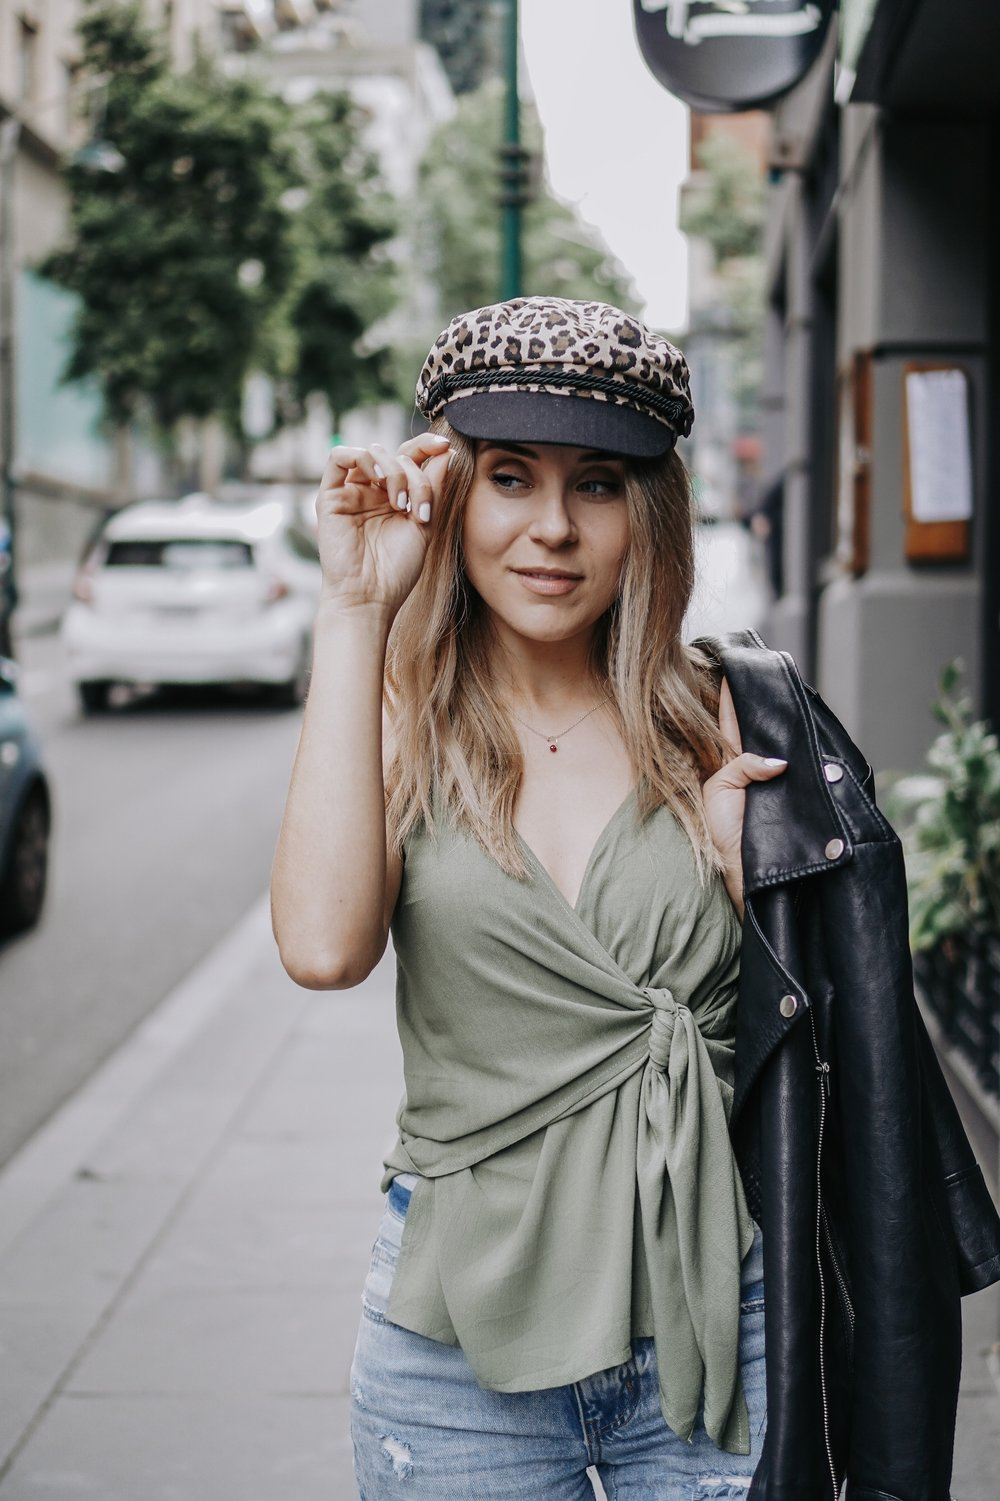 Stylists Outfit Inspiration // A Week Of Uncompromising Sustainable Style With Sonia Kessler From Native Styling on The Good Trade